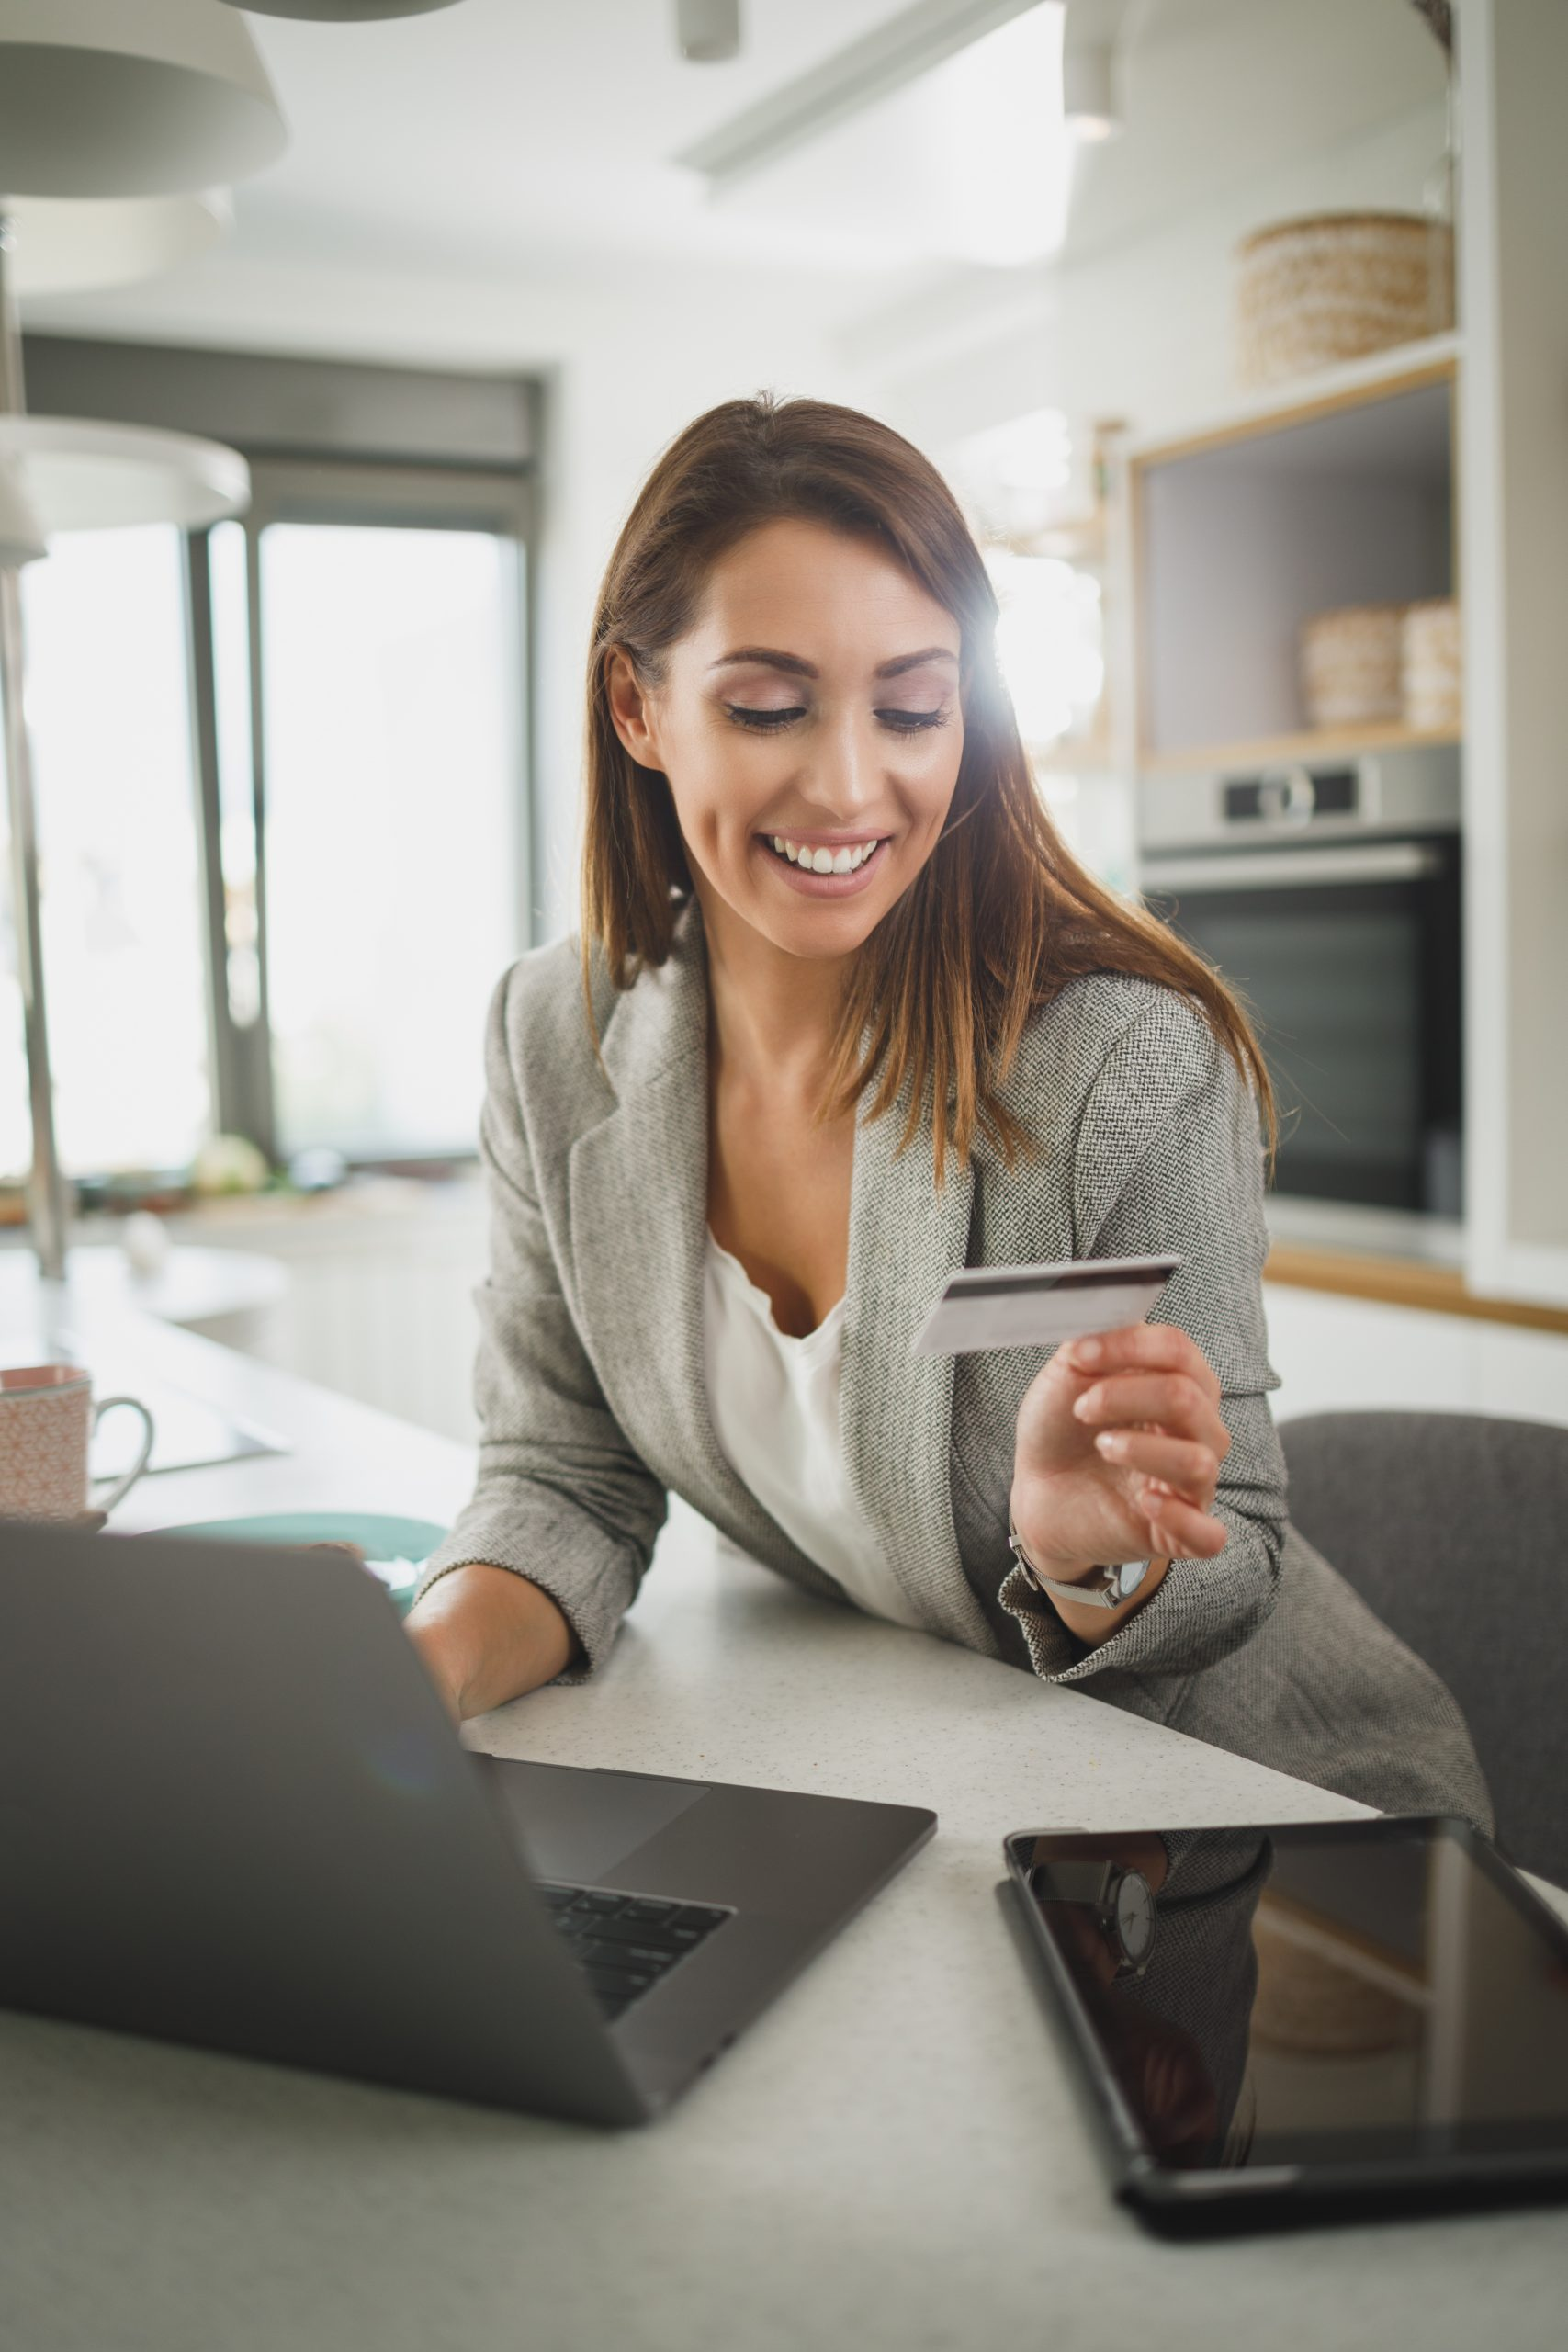 Shot of a young business woman using on her laptop while shopping online in the her kitchen while getting ready to go to work.